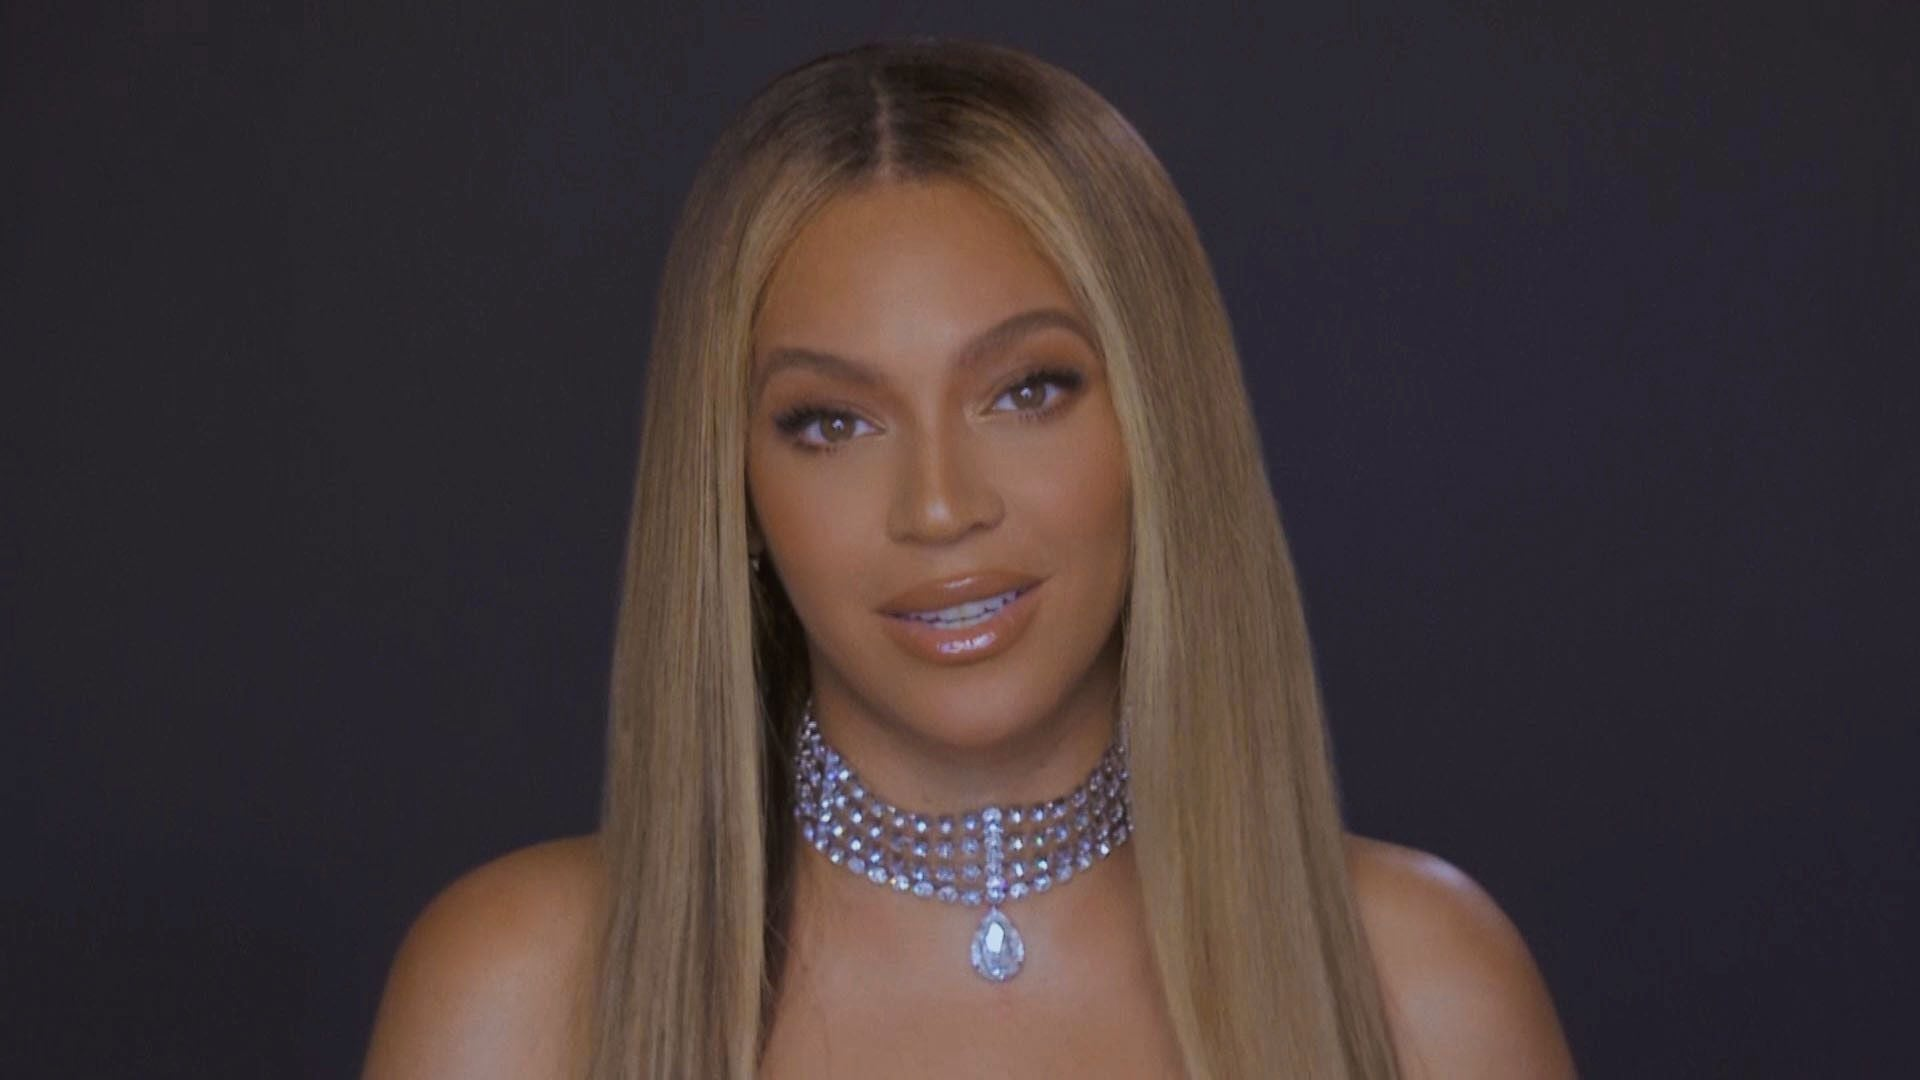 VARIOUS CITIES - JUNE 28: In this screengrab, Beyoncé is seen during the 2020 BET Awards. The 20th annual BET Awards, which aired June 28, 2020, was held virtually due to restrictions to slow the spread of COVID-19. (Photo by BET Awards 2020/Getty Images via Getty Images)